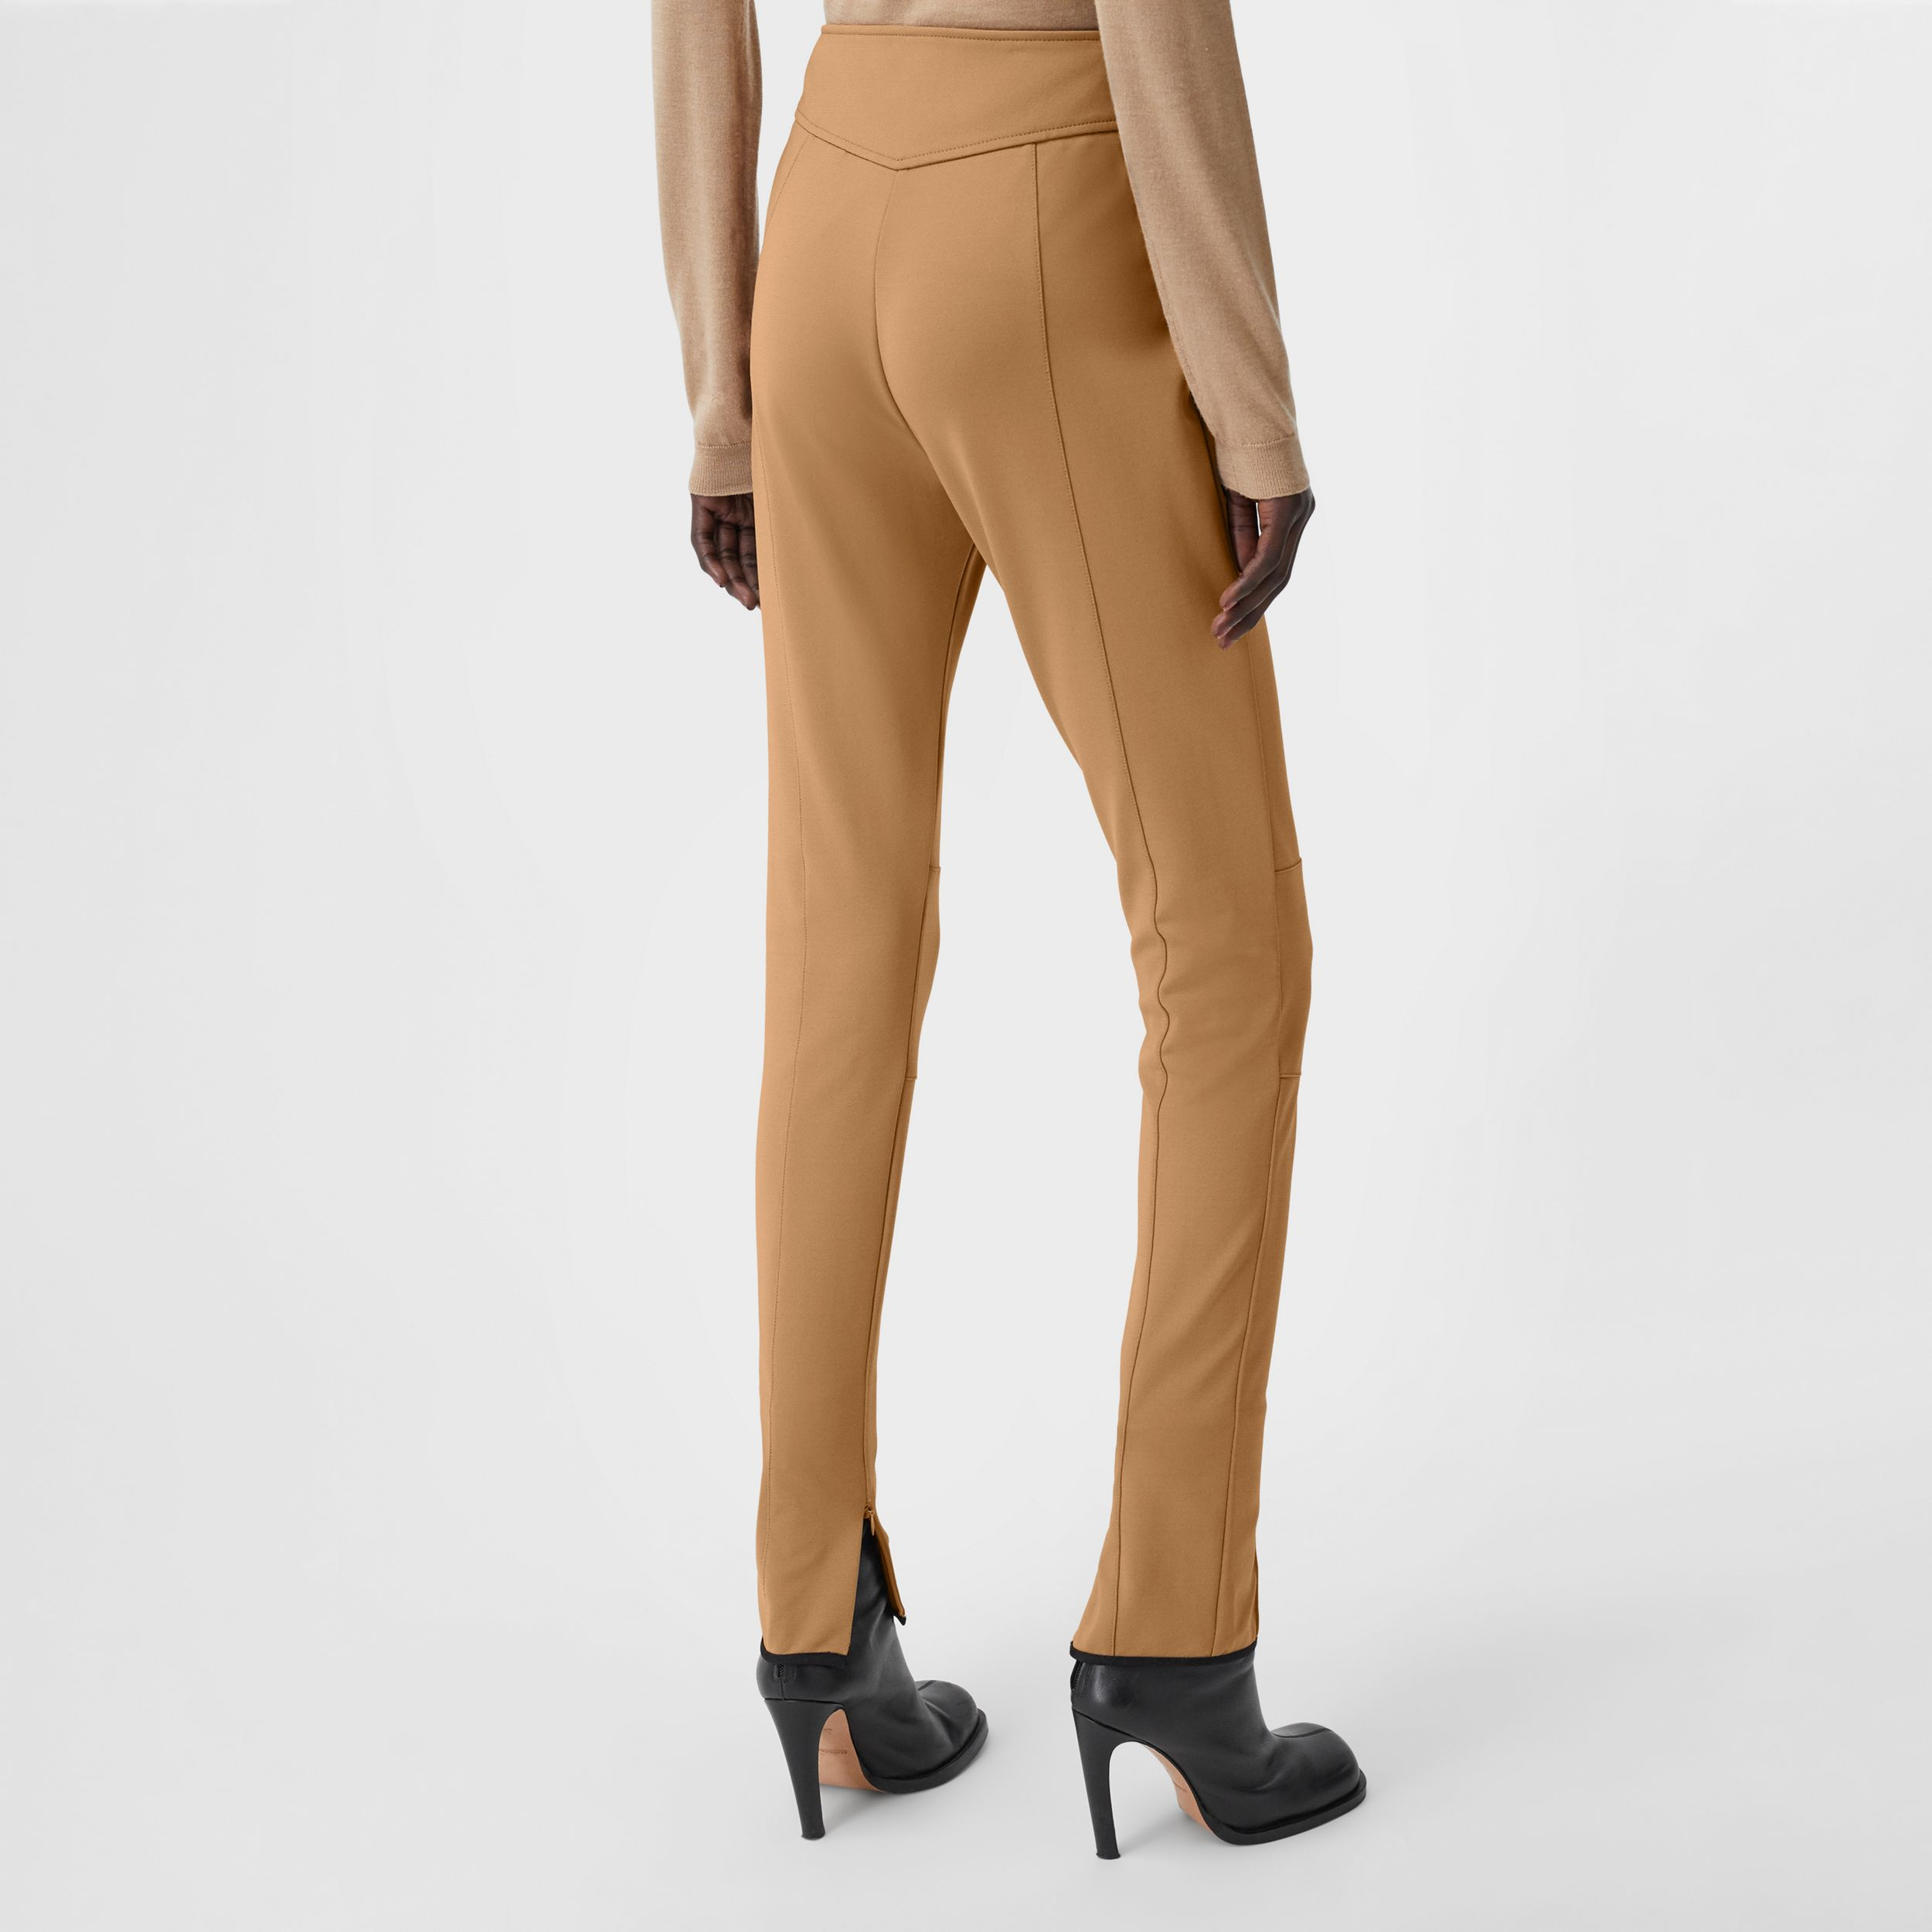 Stretch Crepe Jersey Jodhpurs in Dark Tan - Women | Burberry - 3